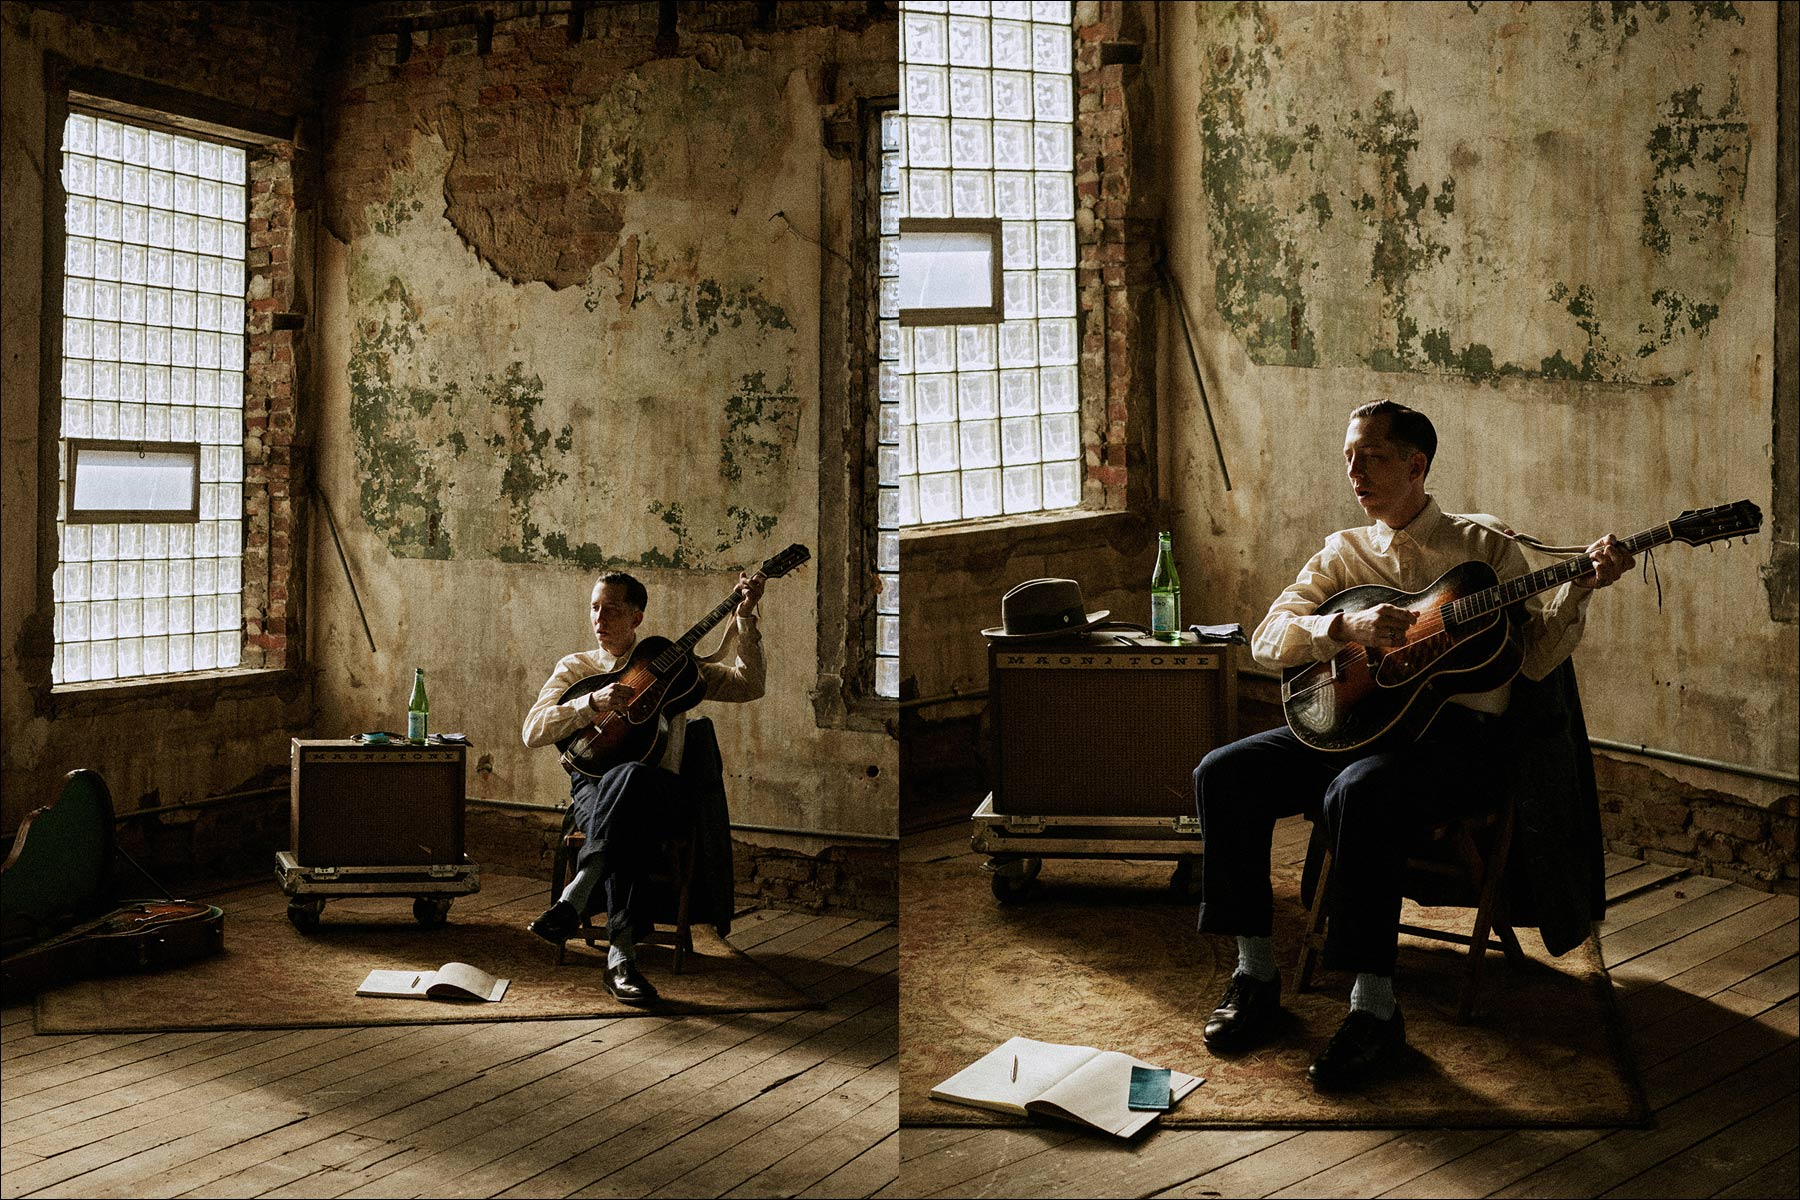 Photographs by Noah Sahady of musician Pokey LaFarge, for Knickerbocker Mfg. Co. Ponyboy magazine.